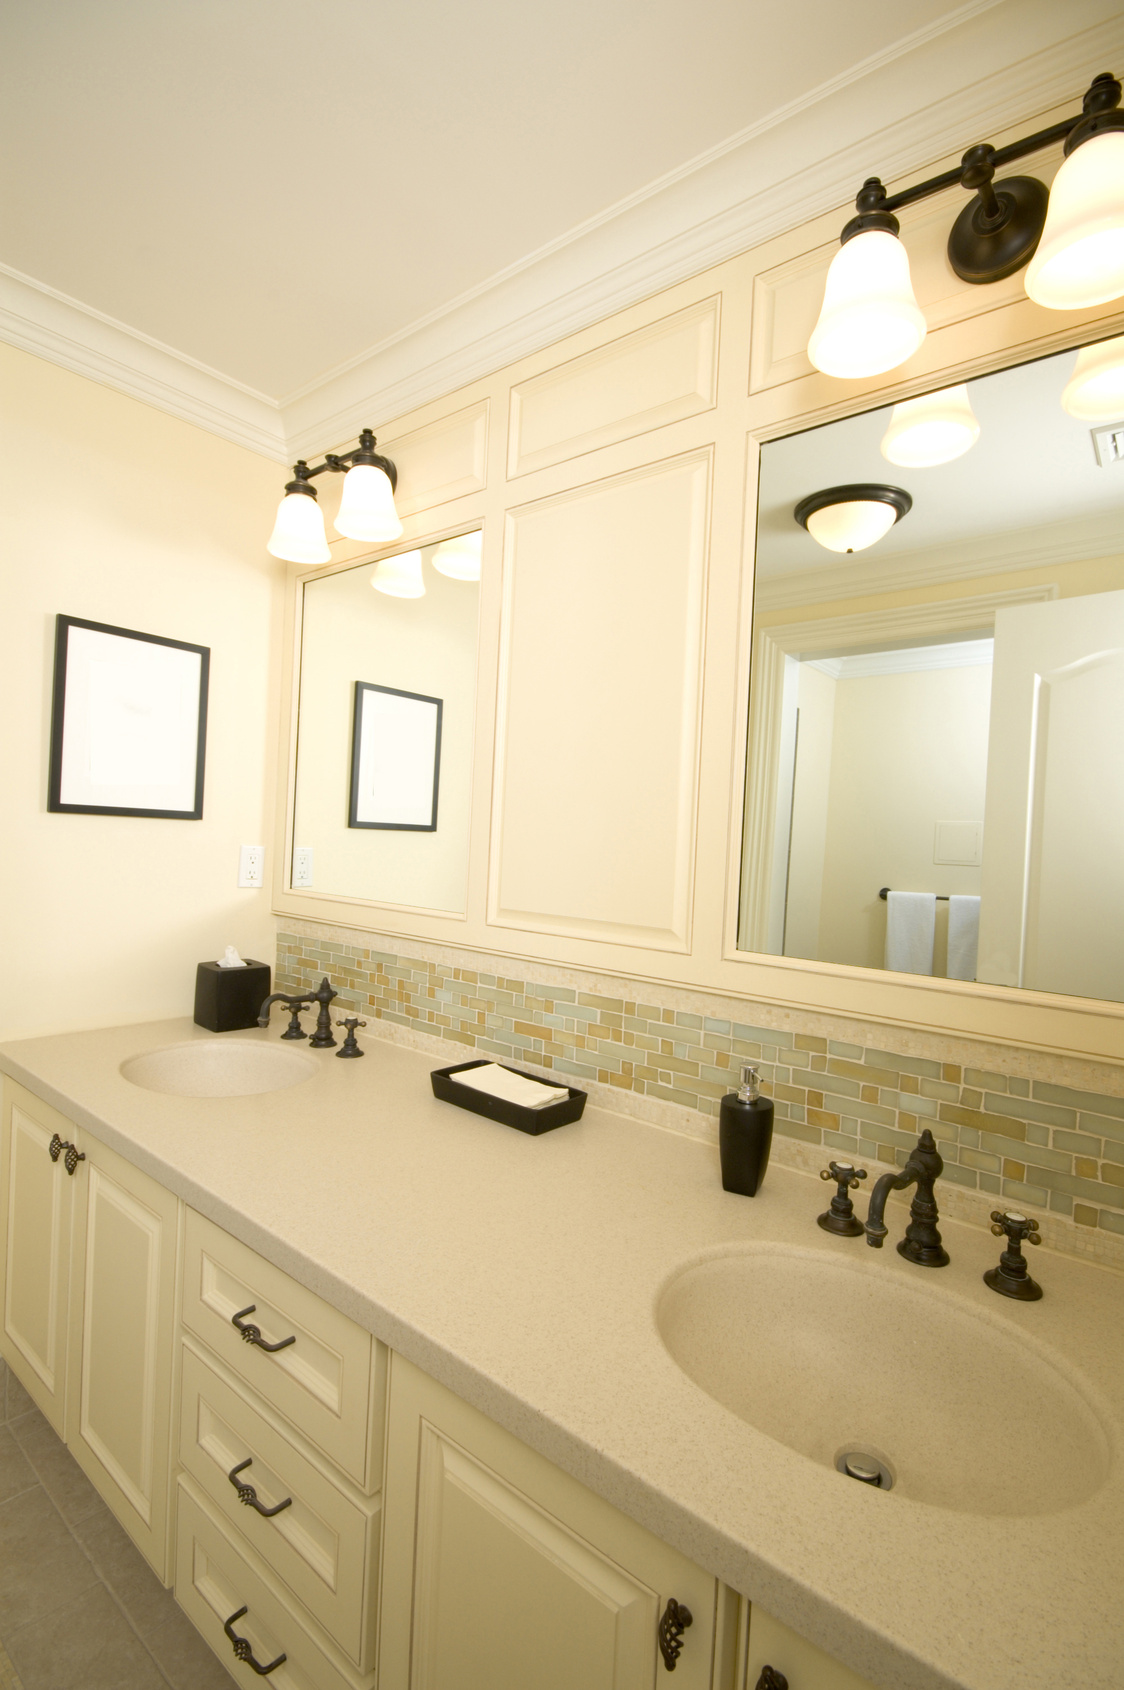 Bathroom Vanities Kansas City k.c. custom cabinets - quality custom cabinetry in kansas city